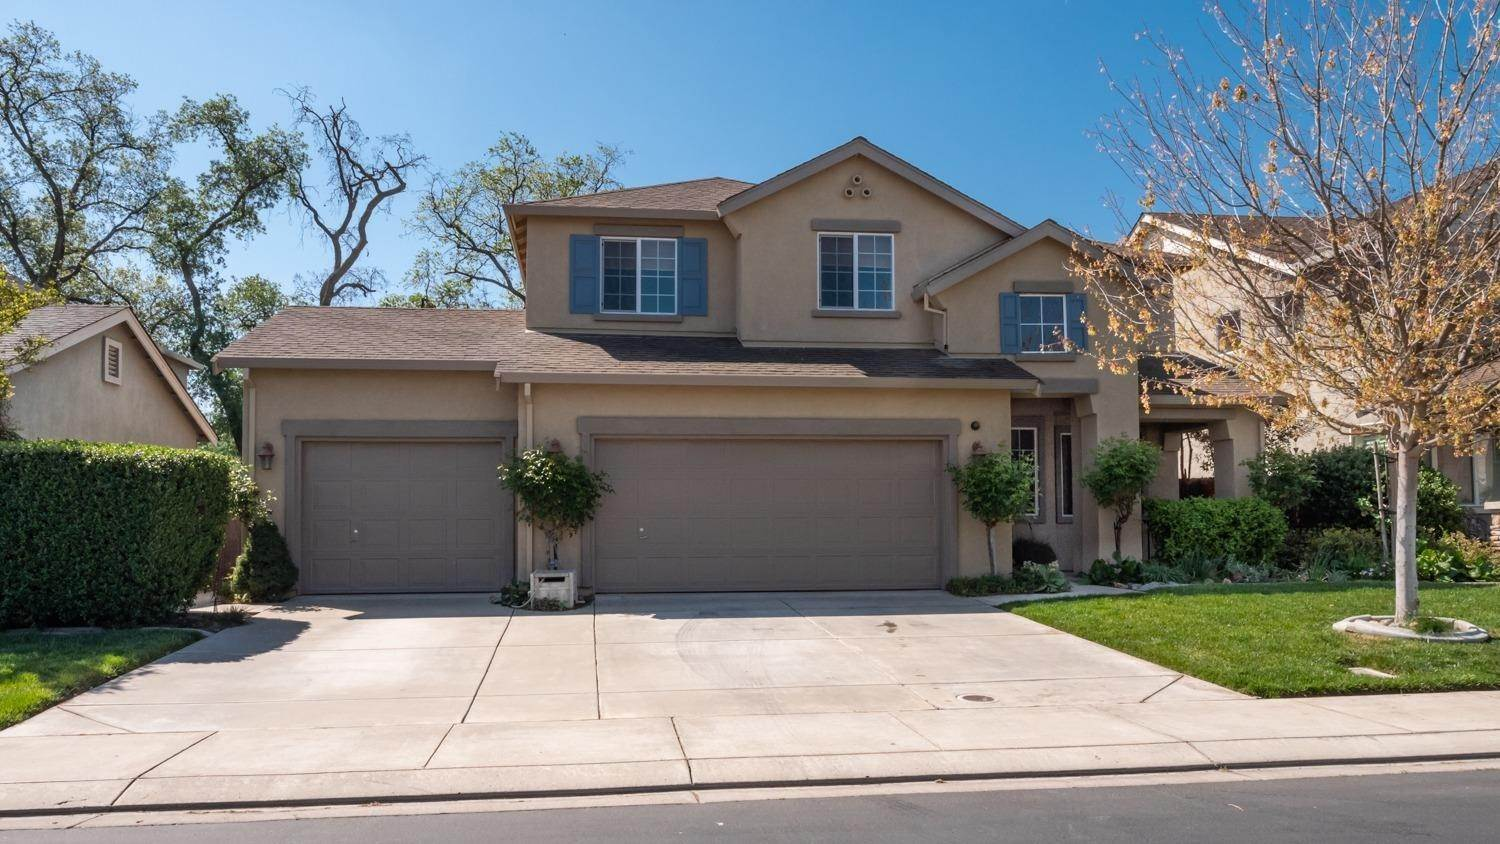 Single Family Homes for Active at 13110 Rivercrest Drive Waterford, California 95386 United States